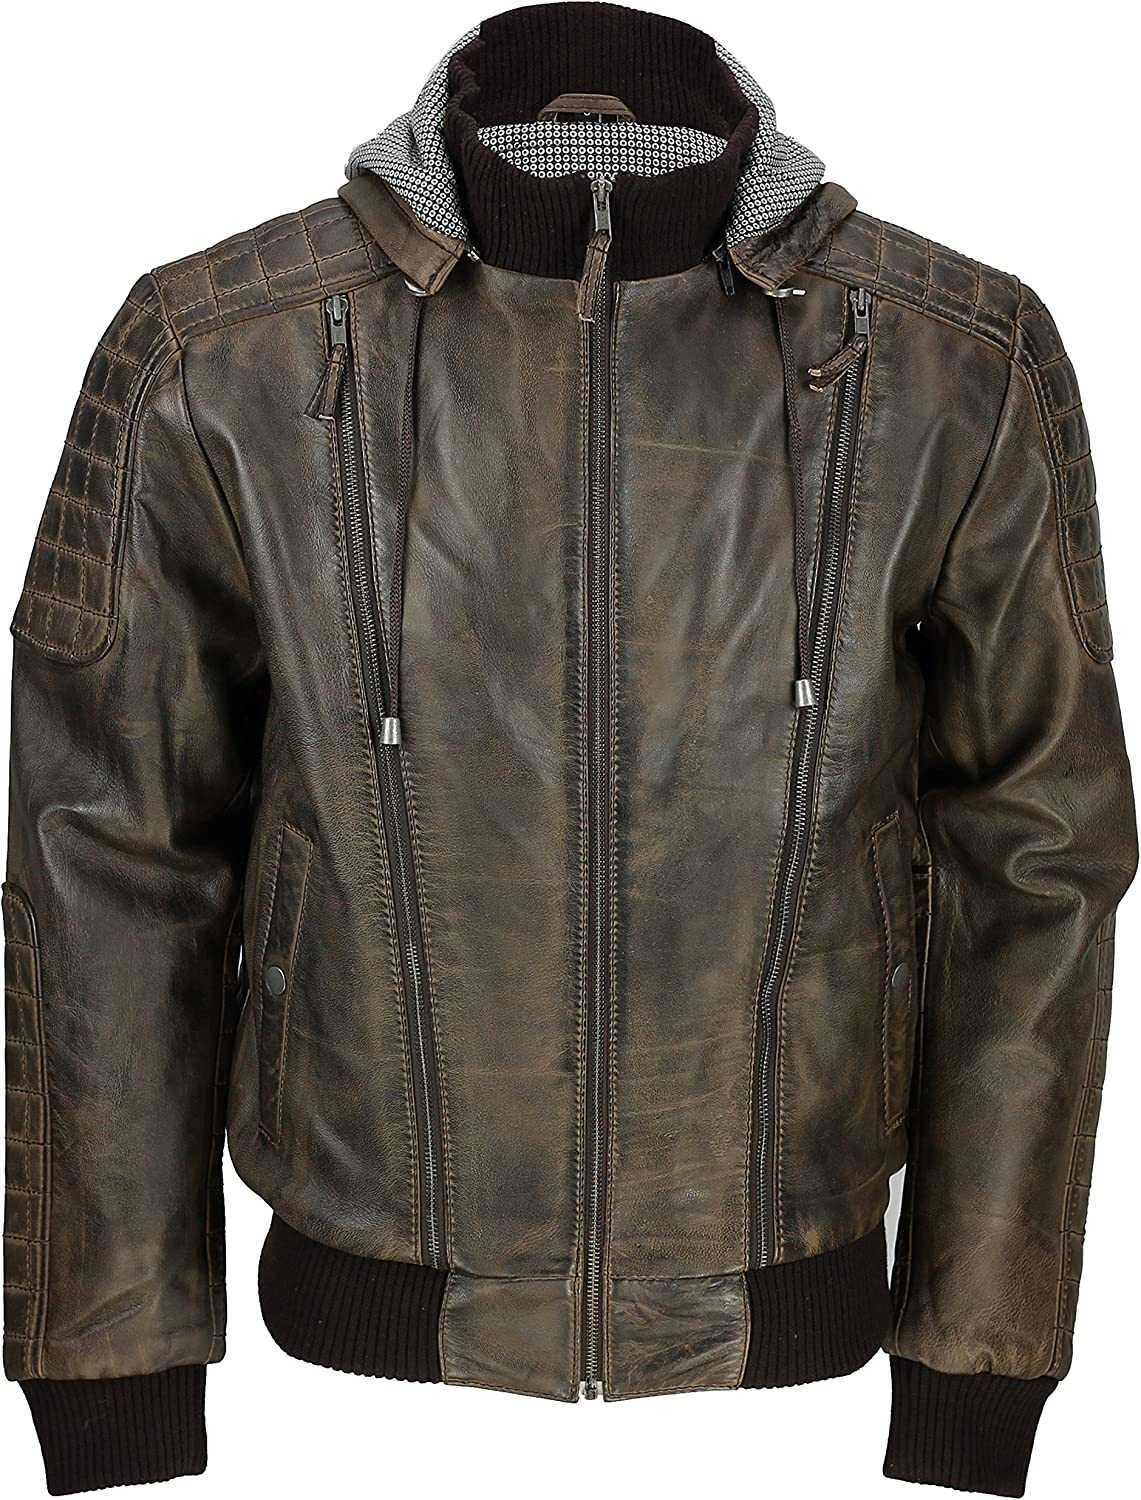 Black Xposed Mens Vintage Real Leather Bomber Jacket Detachable Hood Biker Style in Washed Brown Tan